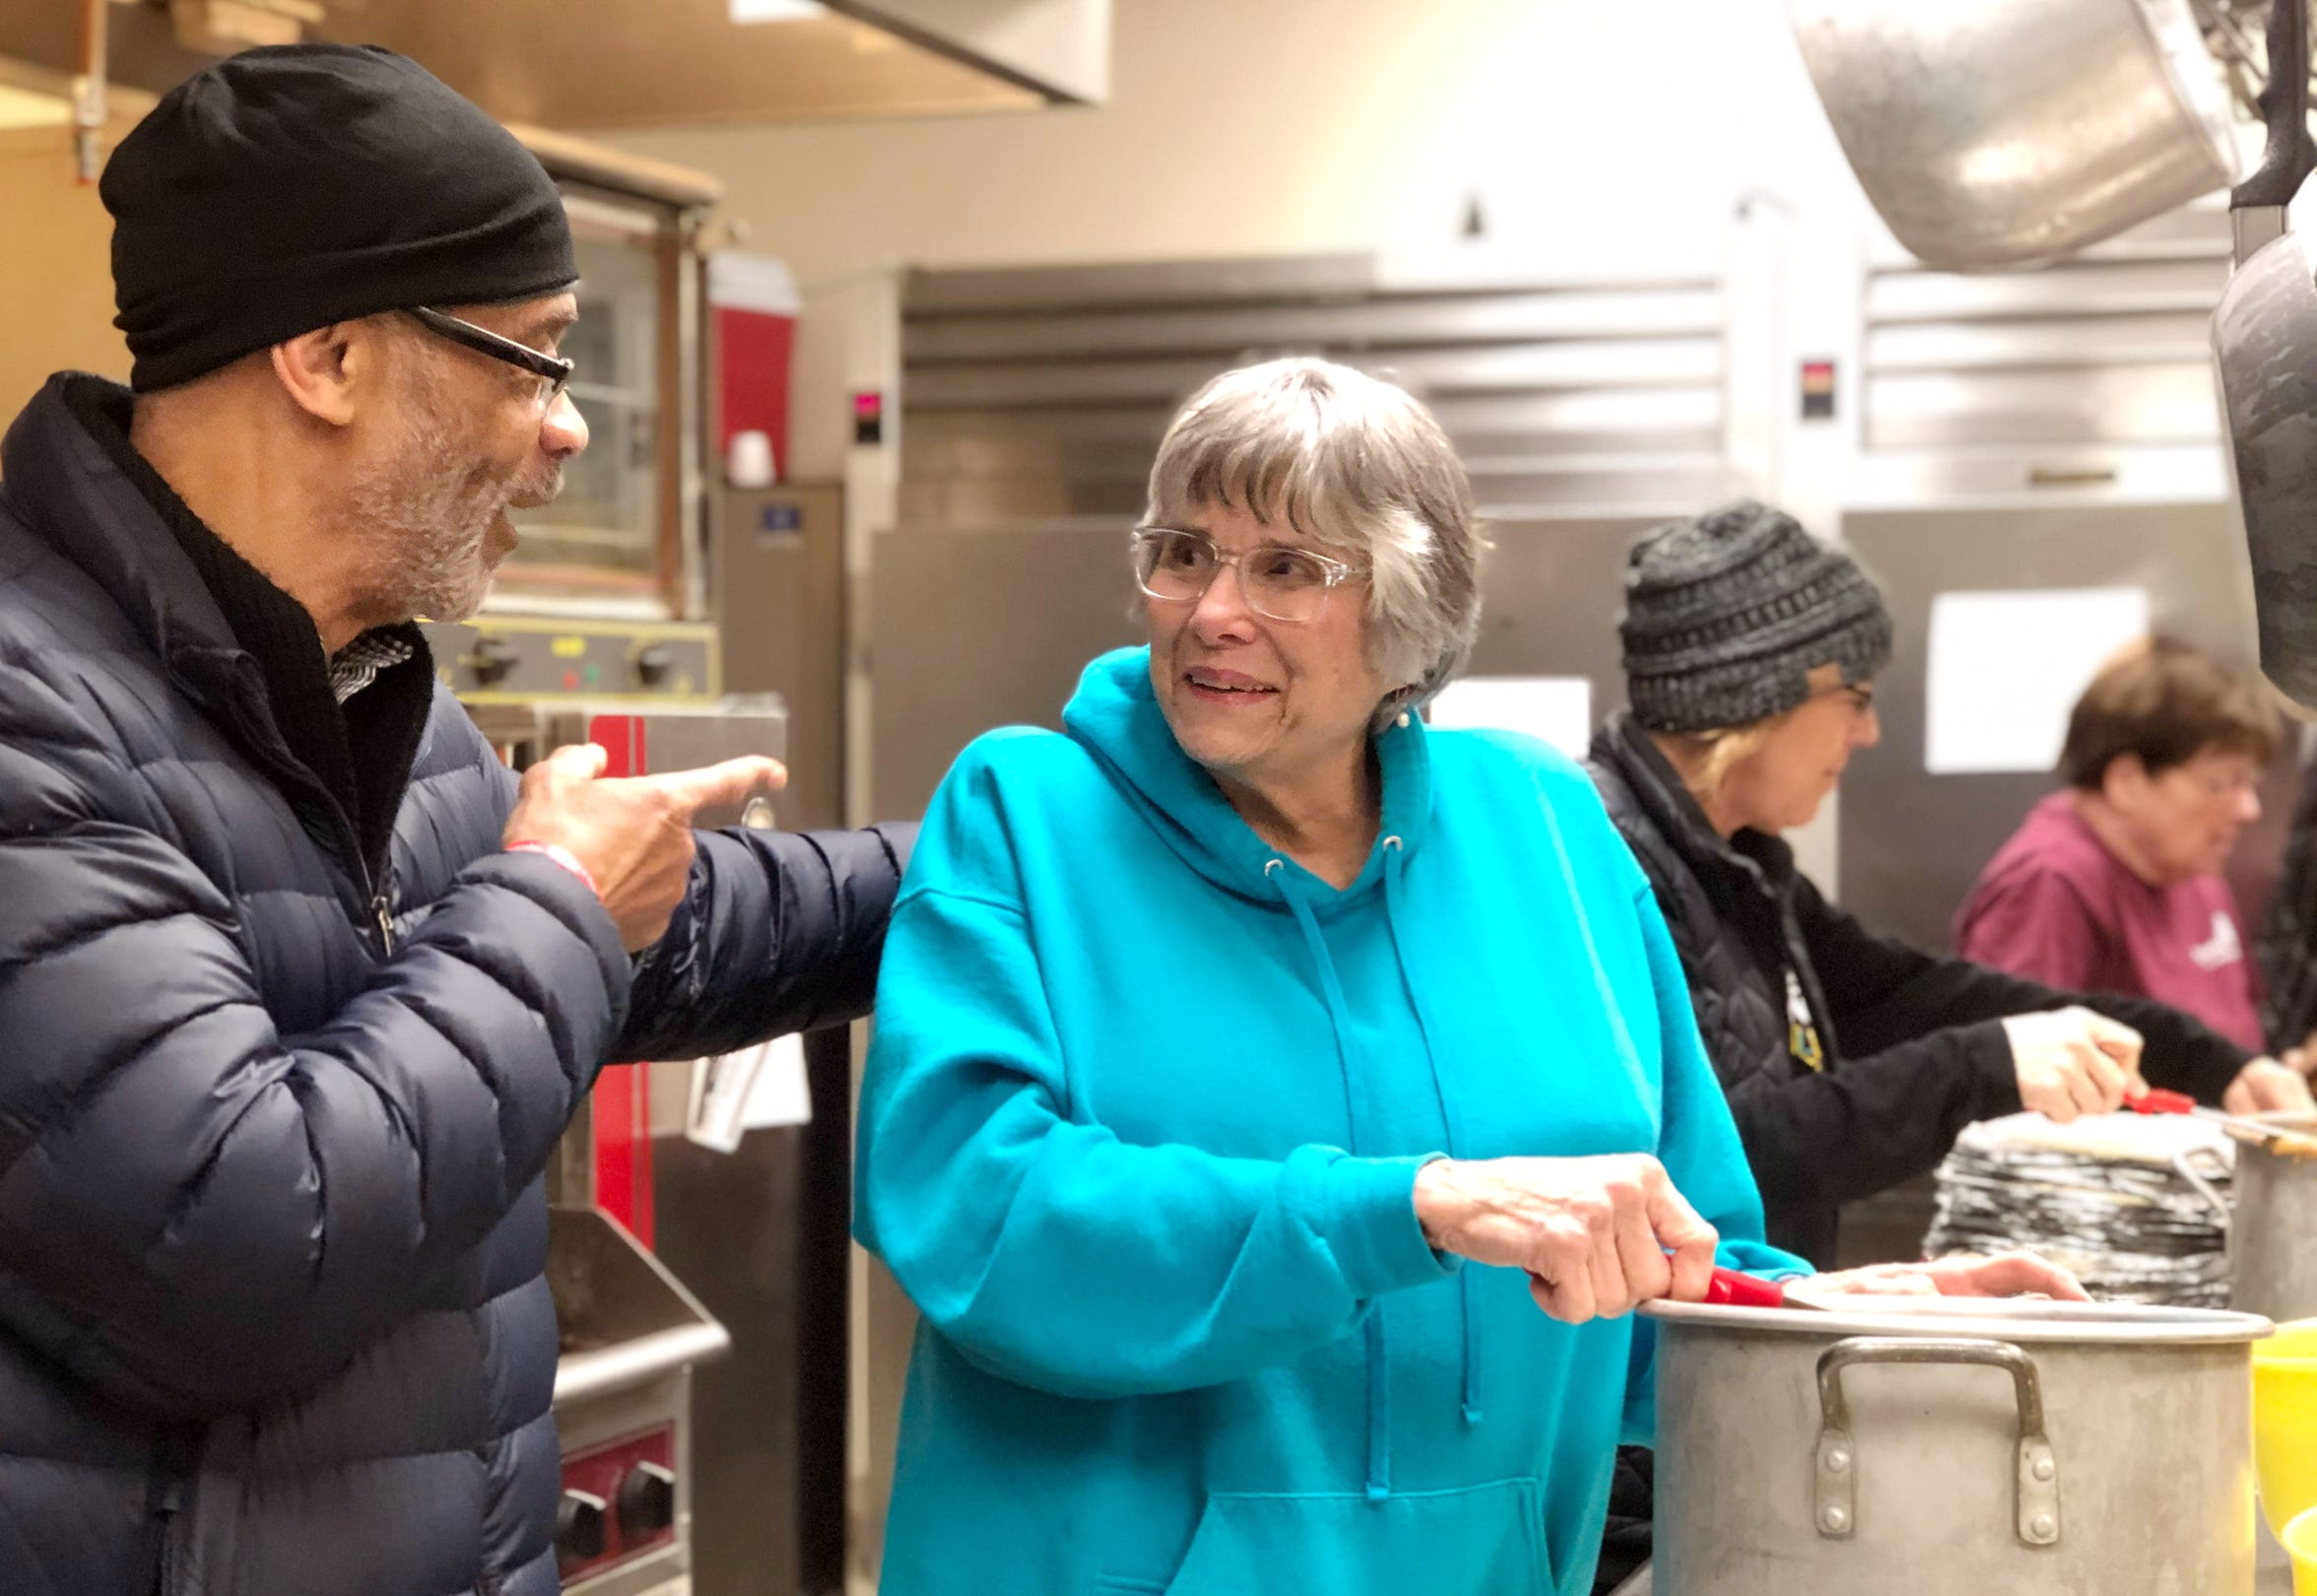 First United Methodist Church volunteers talk during their weekly burrito assembly line. In addition to providing a Room in the Inn with a space for their 'holy hospitality' operation, the church hands out food to those in need every Tuesday.